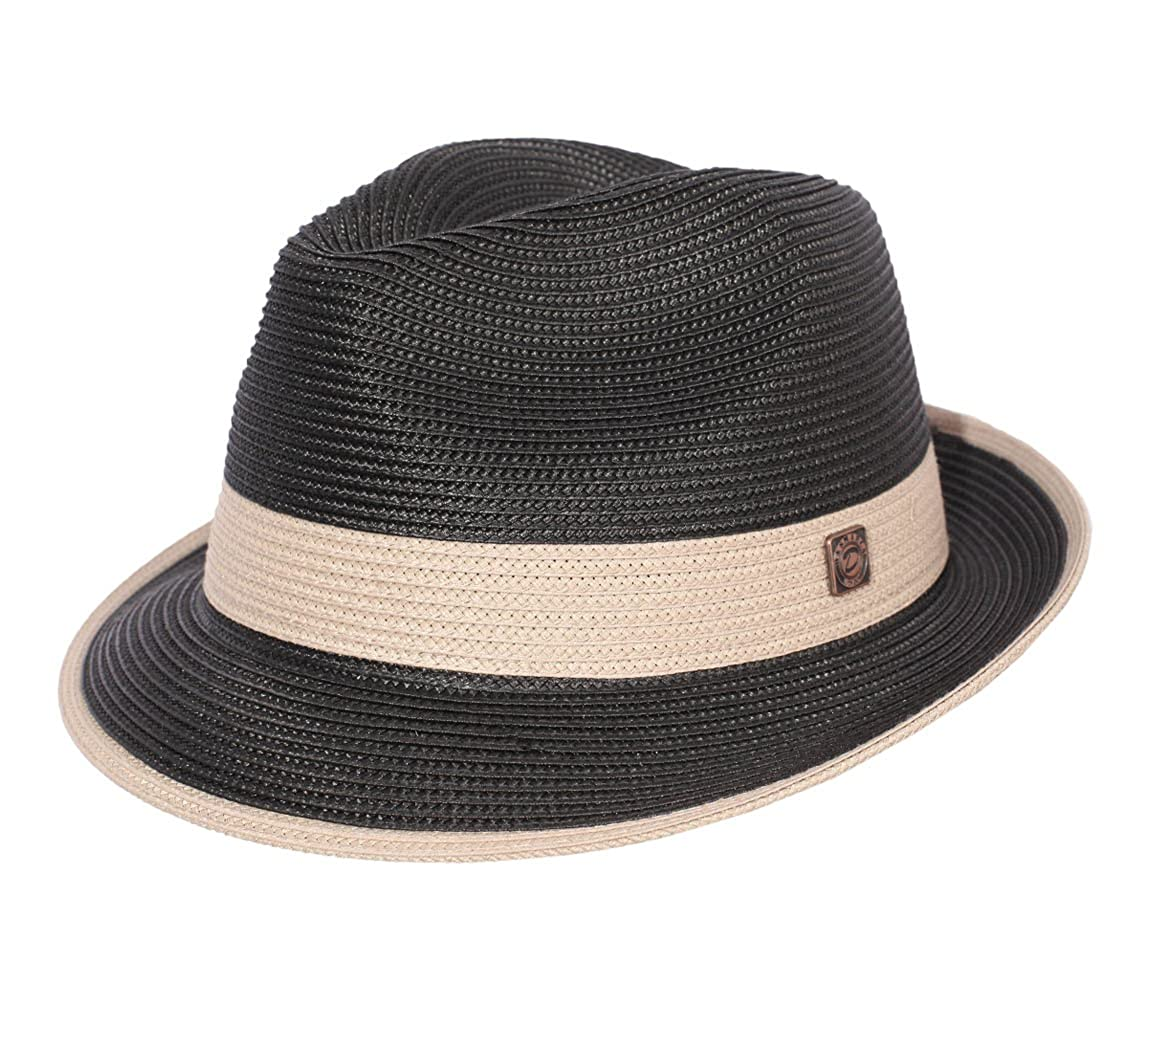 Dasmarca Florence Trilby Hat Packable